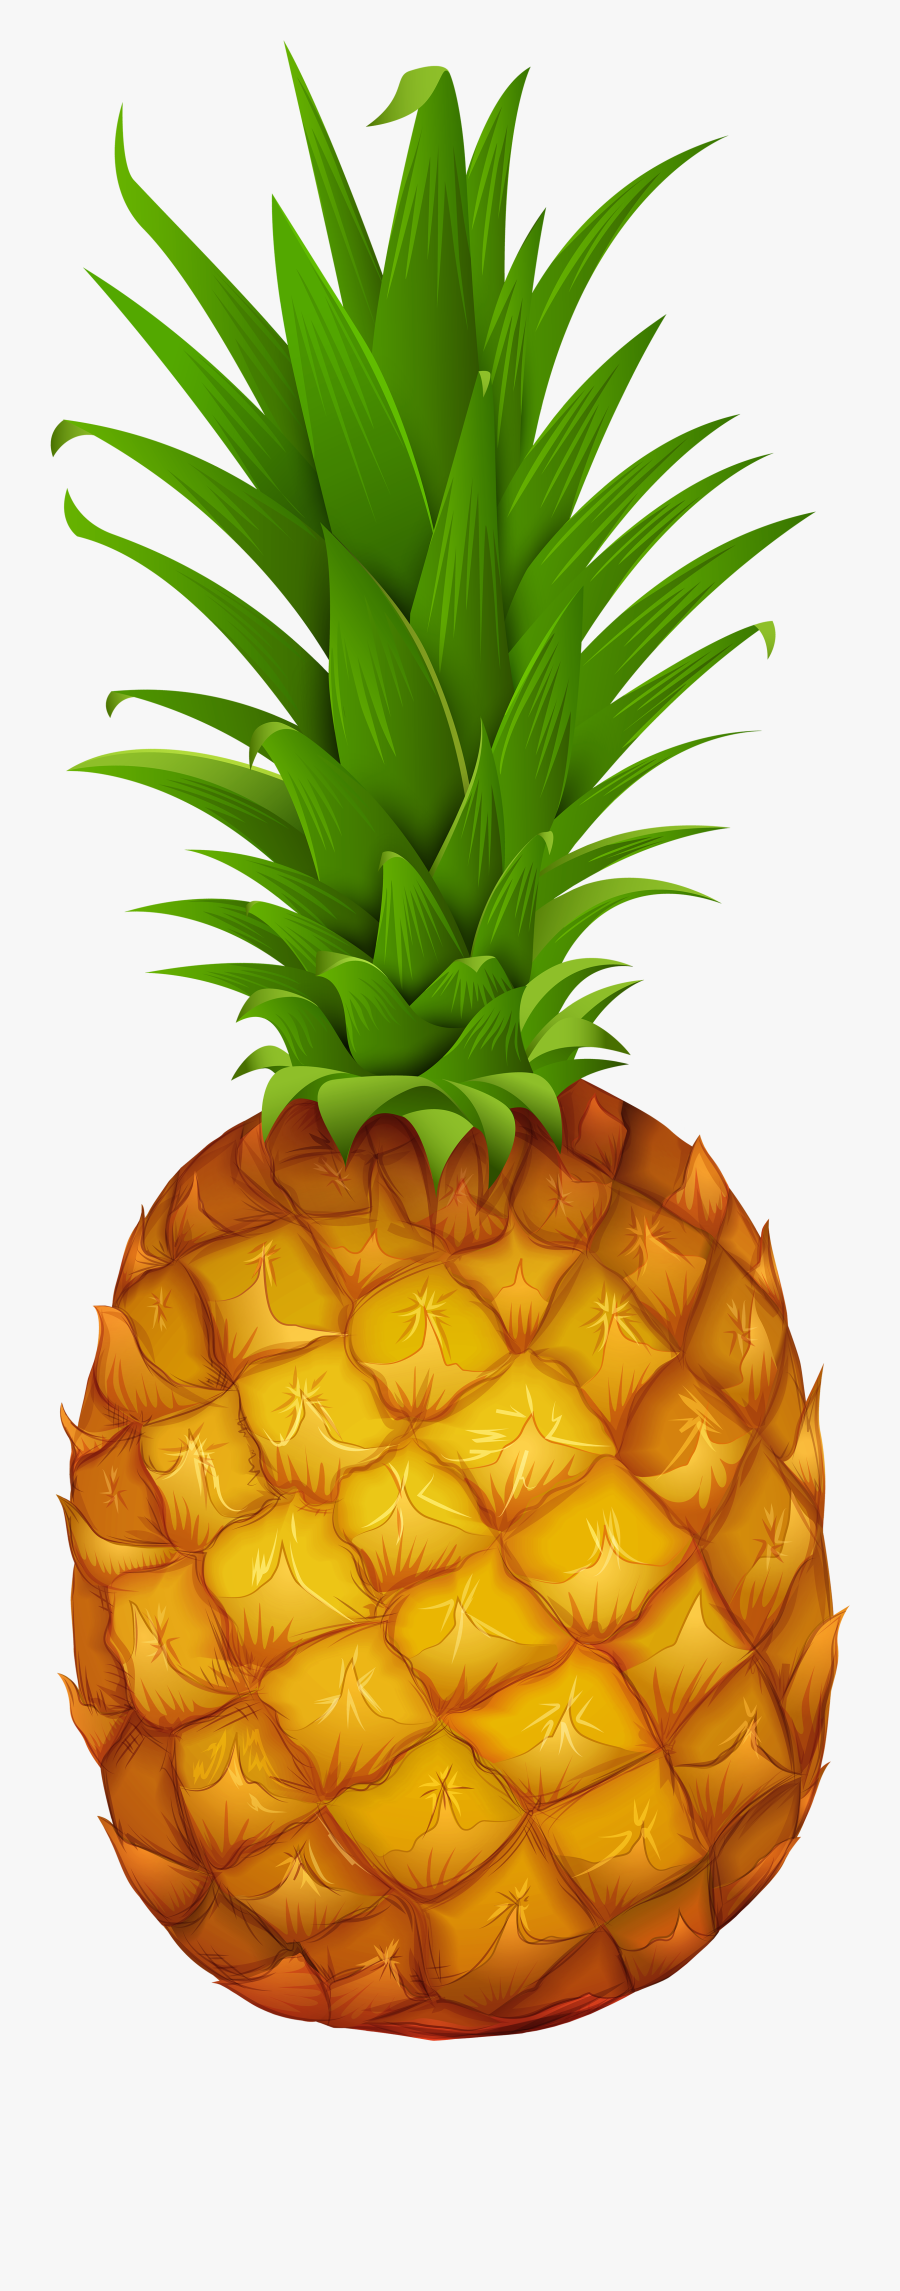 Png Gallery Yopriceville High - Transparent Pineapple Png Clipart, Transparent Clipart